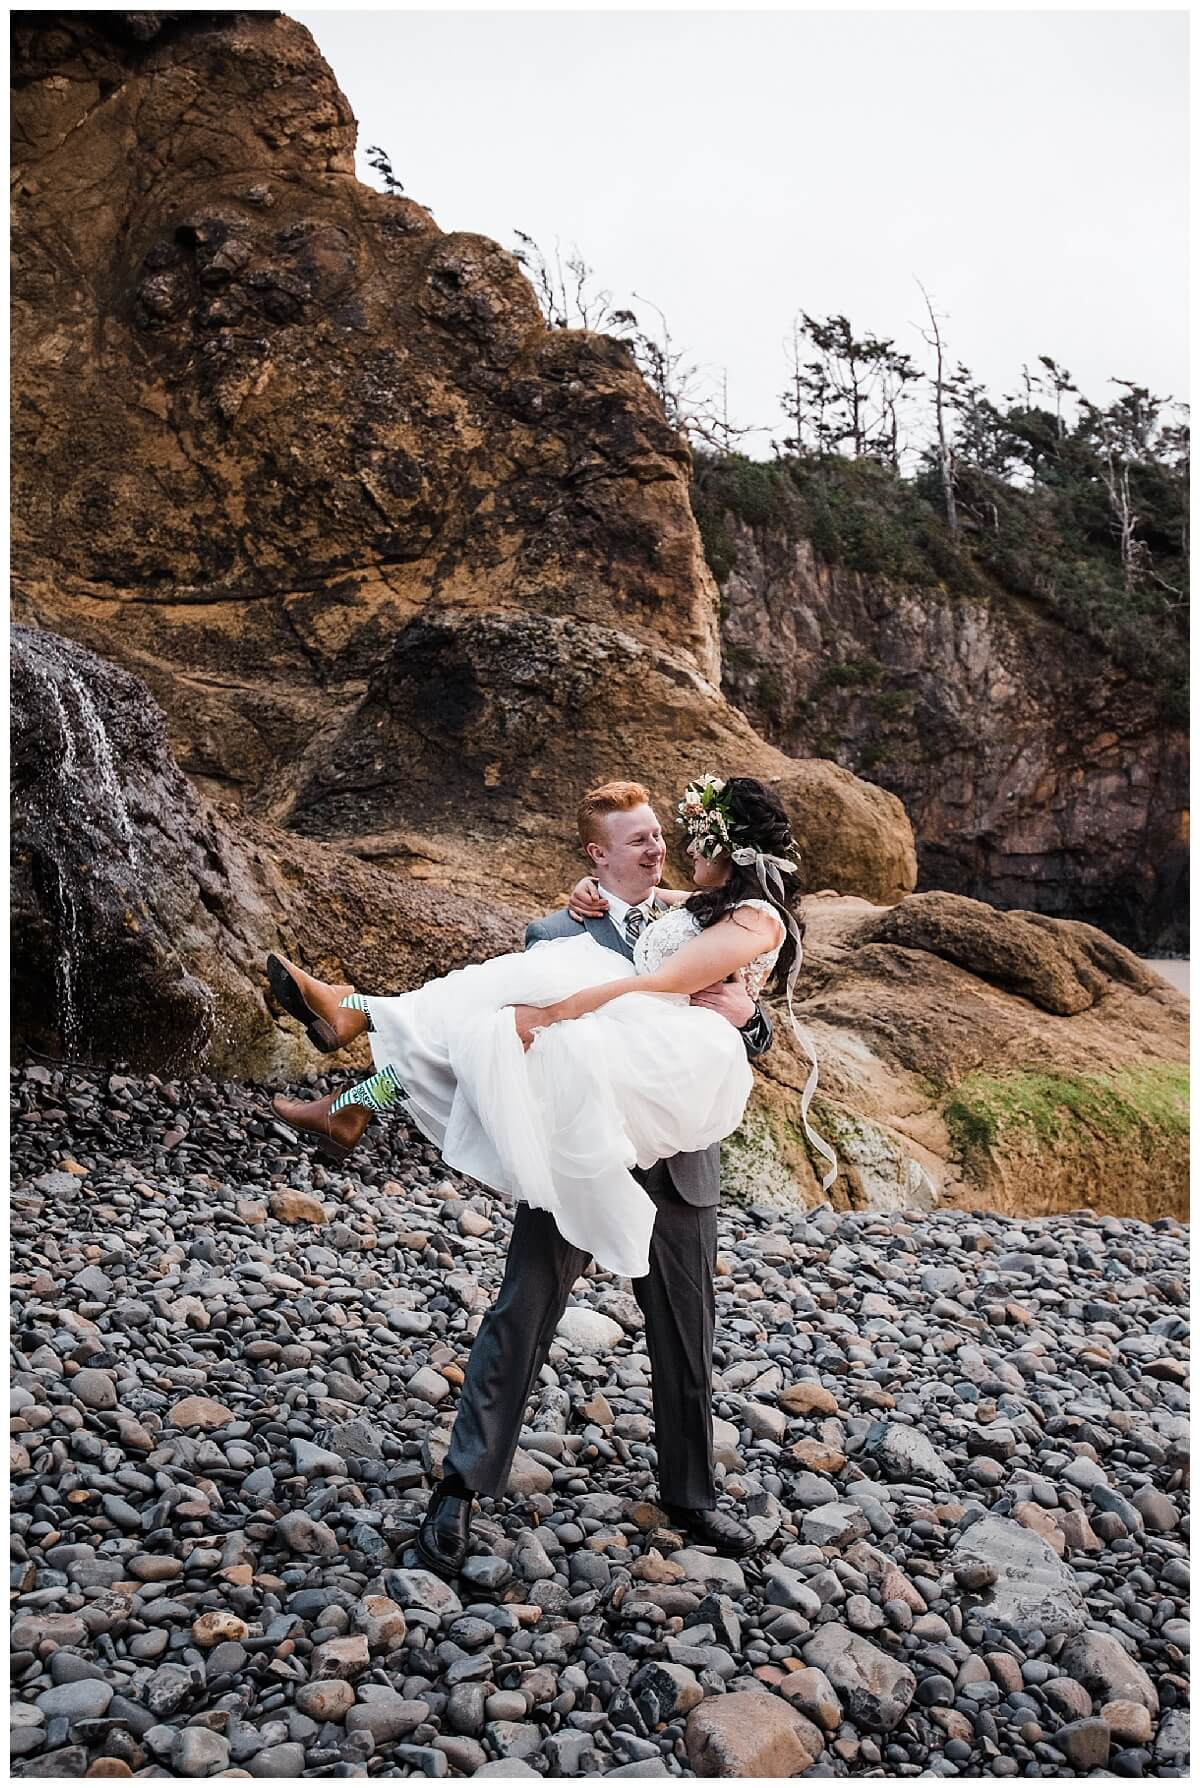 S Photography,beach wedding,blush bridal eugene,elopement photographer,geometric arbor,geometric elopement,hug point state recreation site,intimate wedding,maggie murray creative,meranda lynn beauty,minimalist elopement,oregon coast,pacific northwest,prima planning and events,